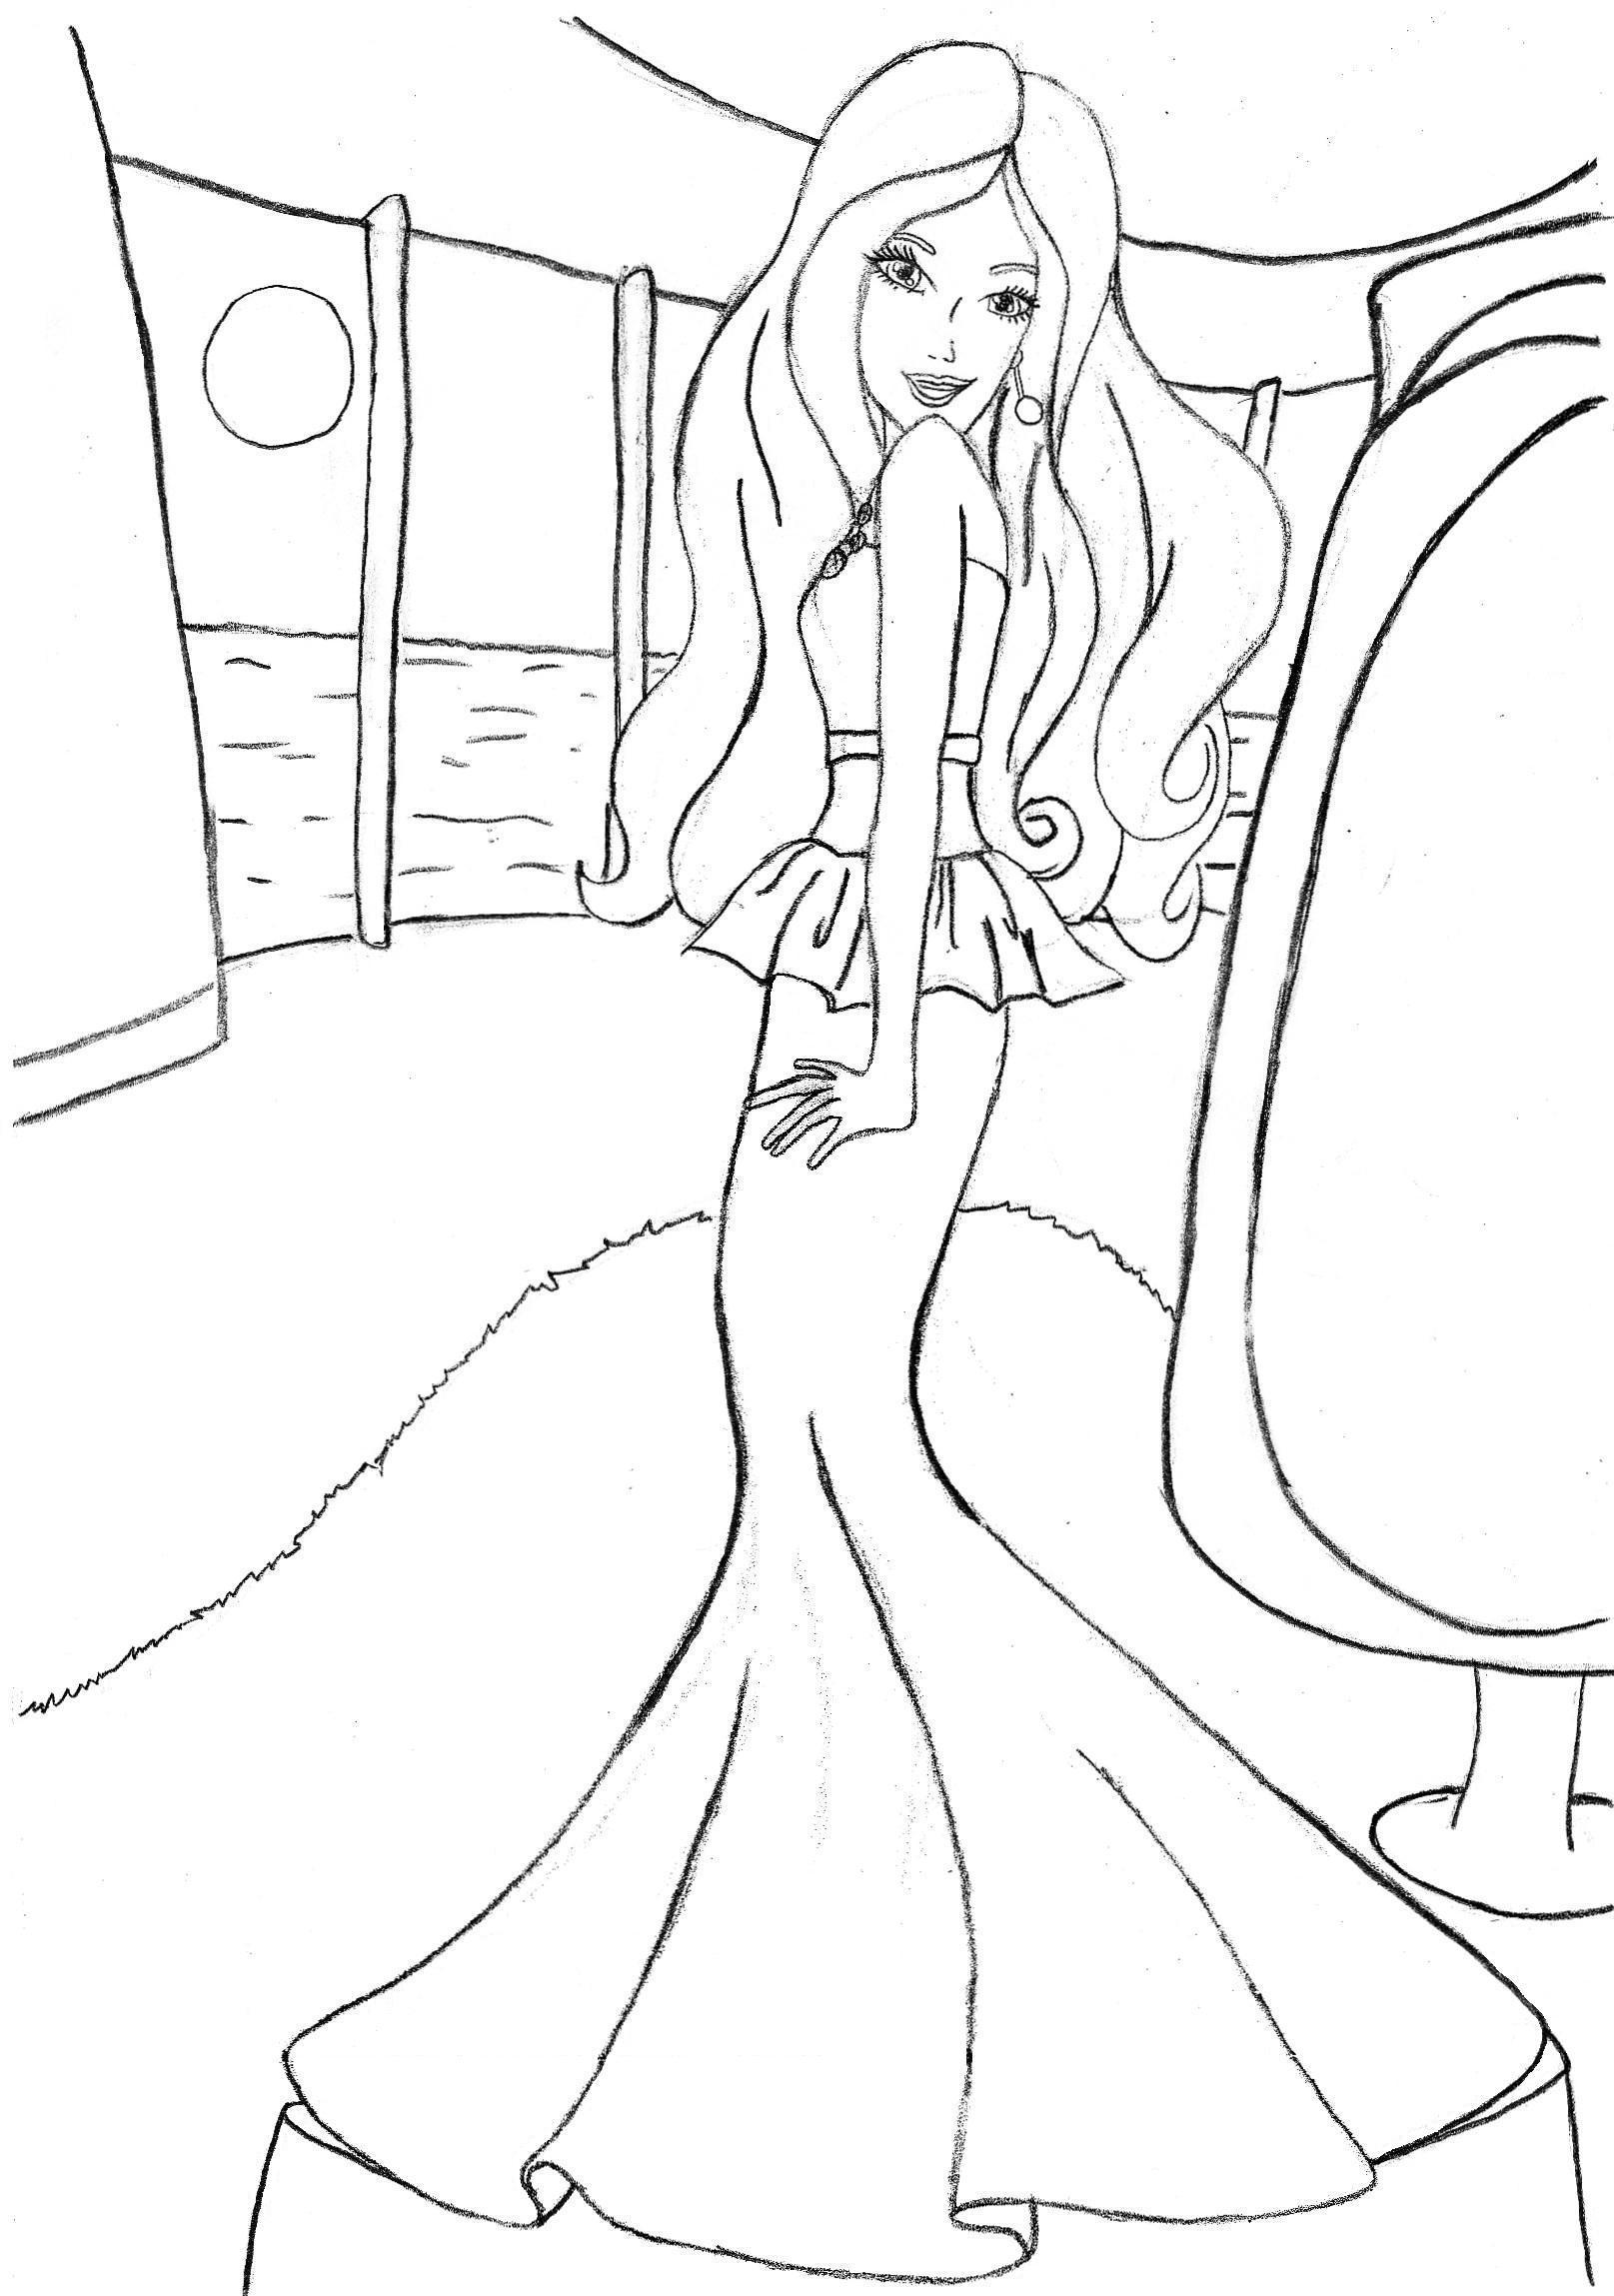 Barbie colouring in online free - Coloring Pages Online Free Printable Barbie Coloring Pages Fresh In Painting Free Coloring Kids Jpg